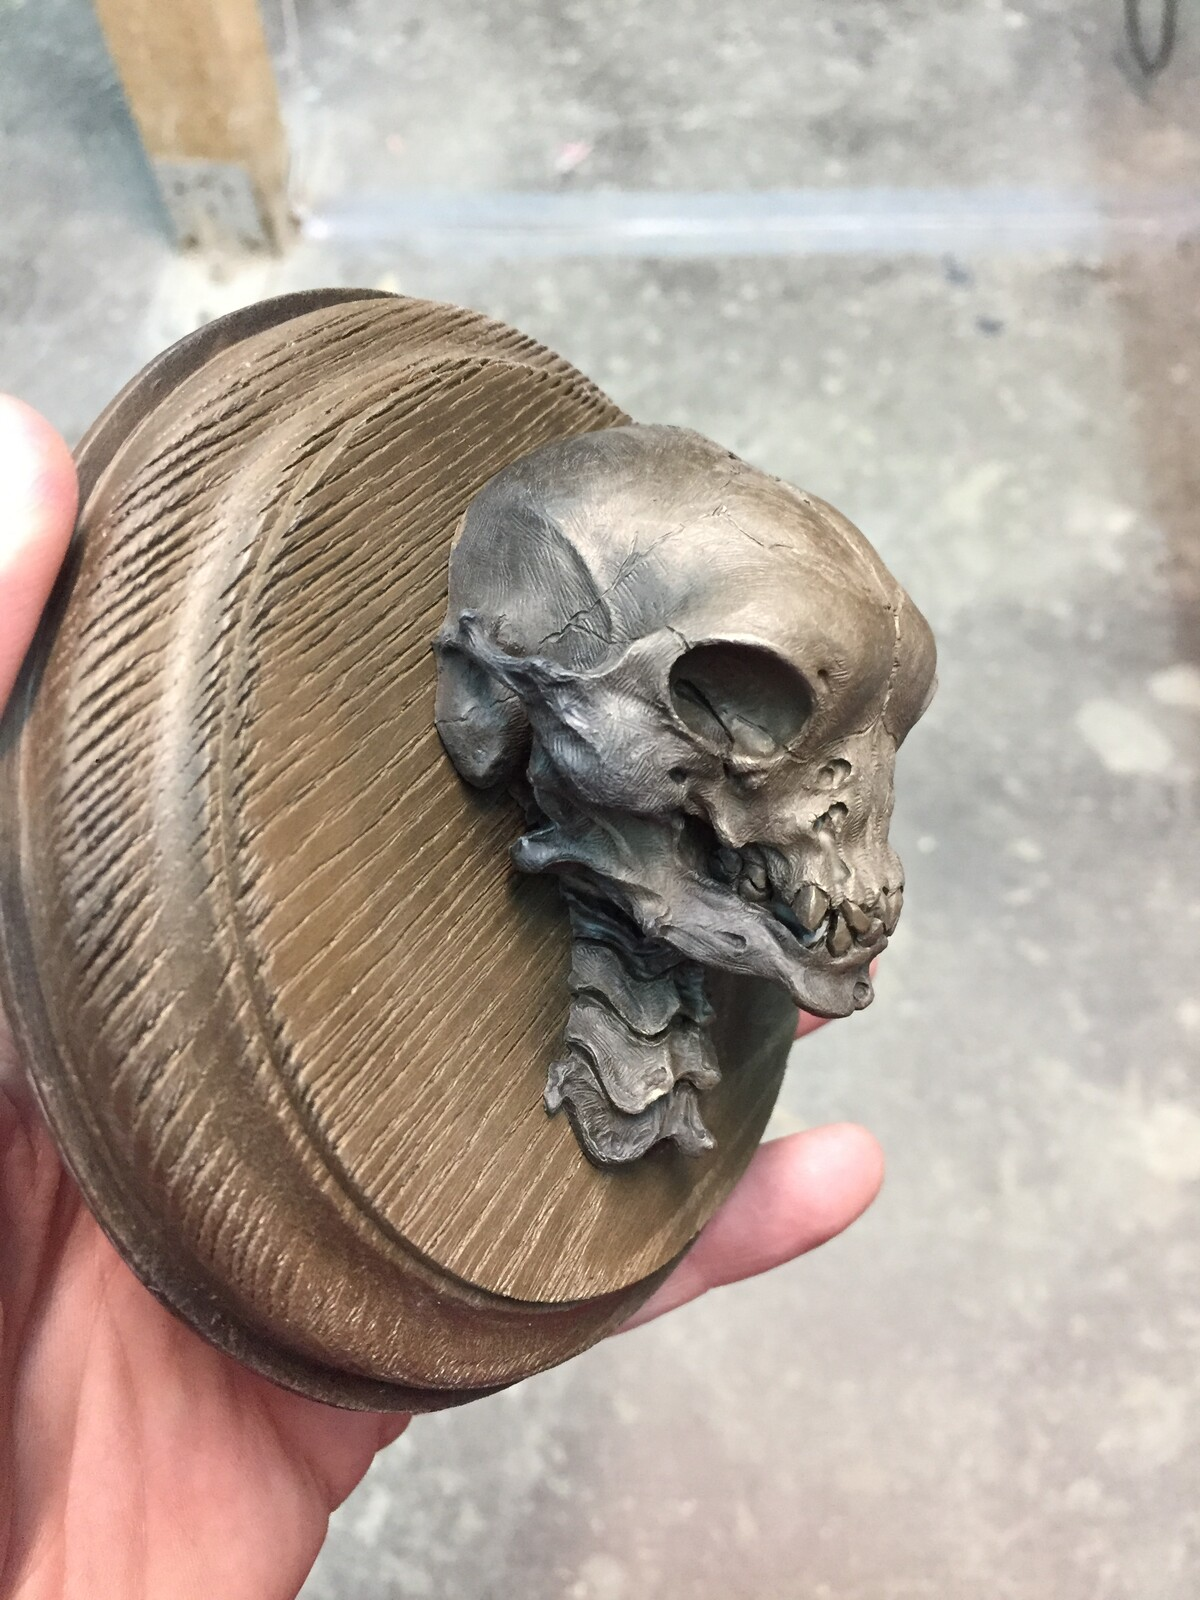 The original skull  was carved from polymer clay. This creature is made of bronze metal cold casting. Design and sculpture head made by Tomek Radziewicz. Collectible sculpture for horror and fantasy fans.